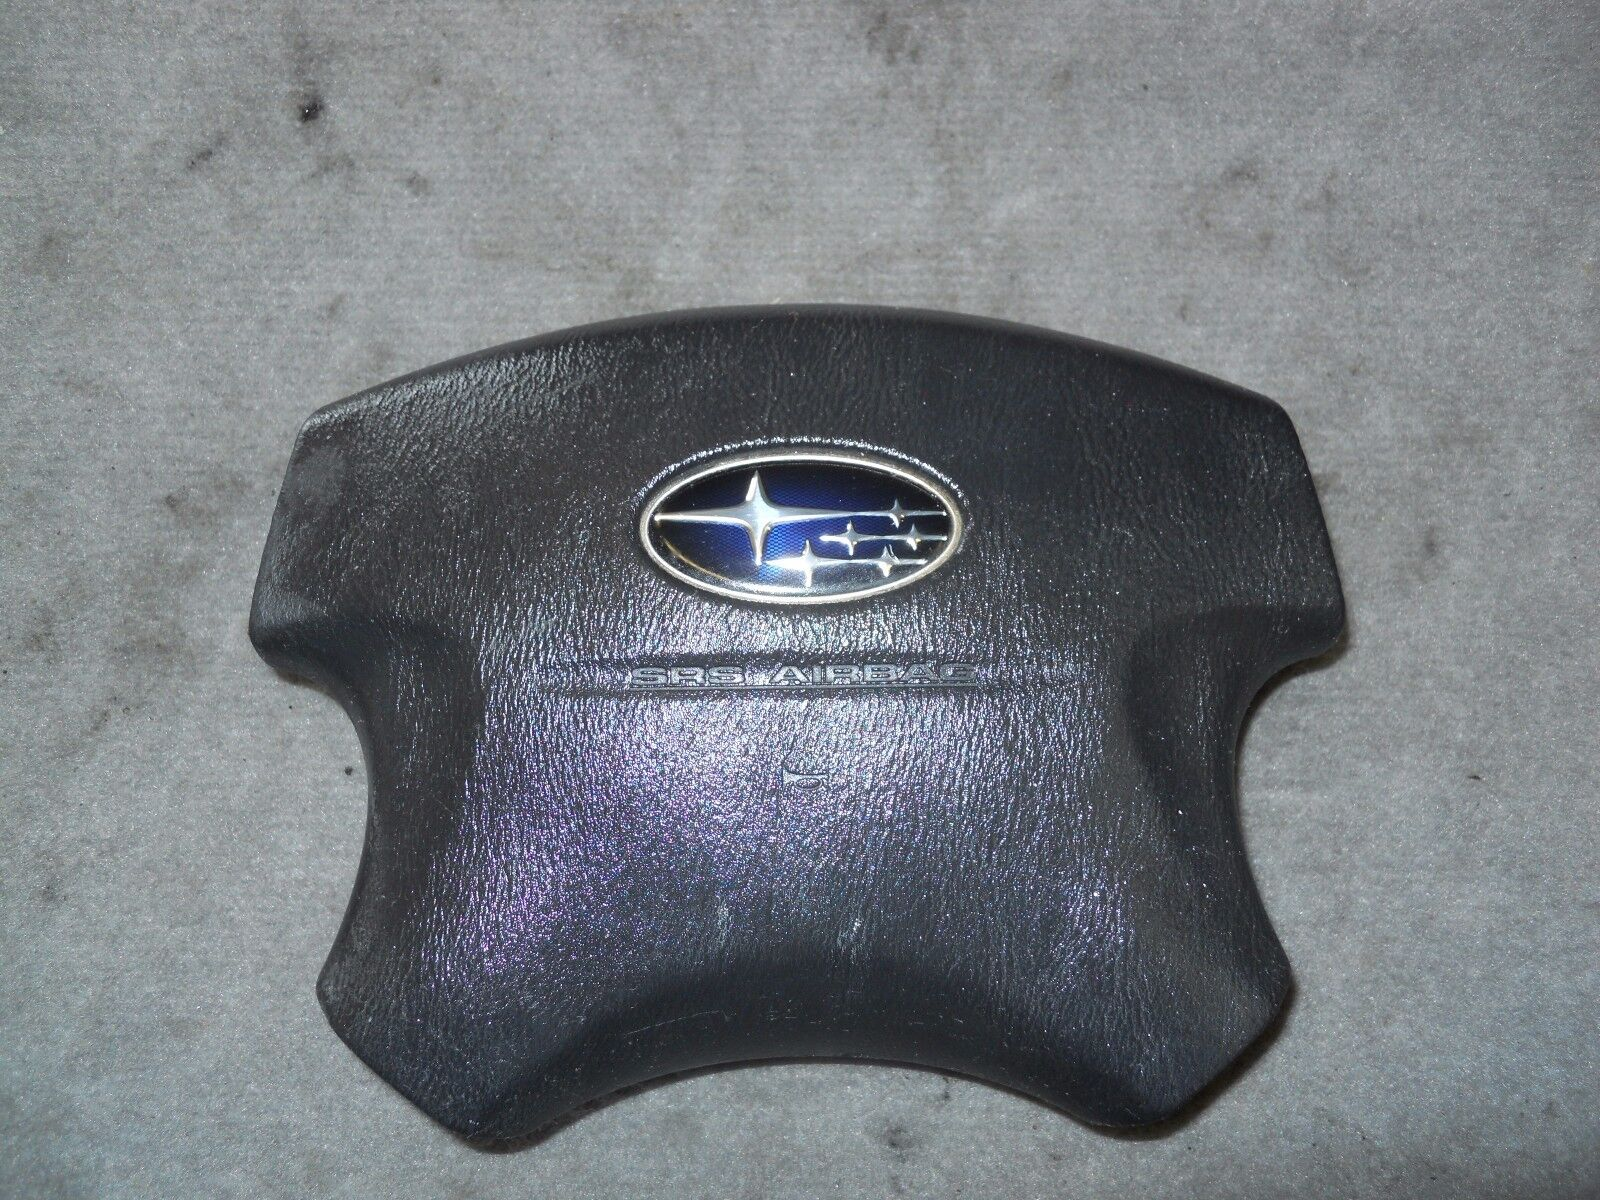 Used subaru forester xt parts for sale 2004 subaru forester front drivers side steering wheel air bag vanachro Images